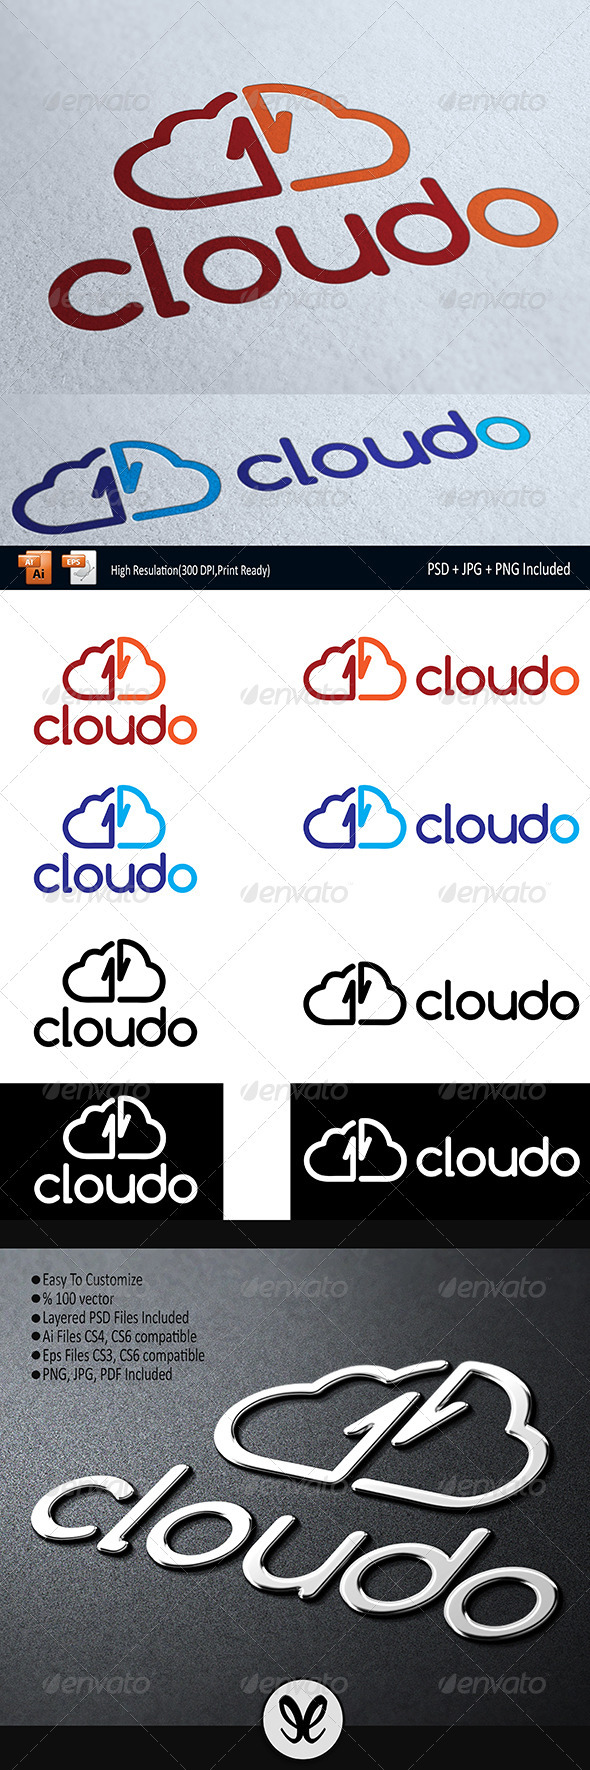 GraphicRiver Cloud Storage Cloudoo Logo Temlate 3460879